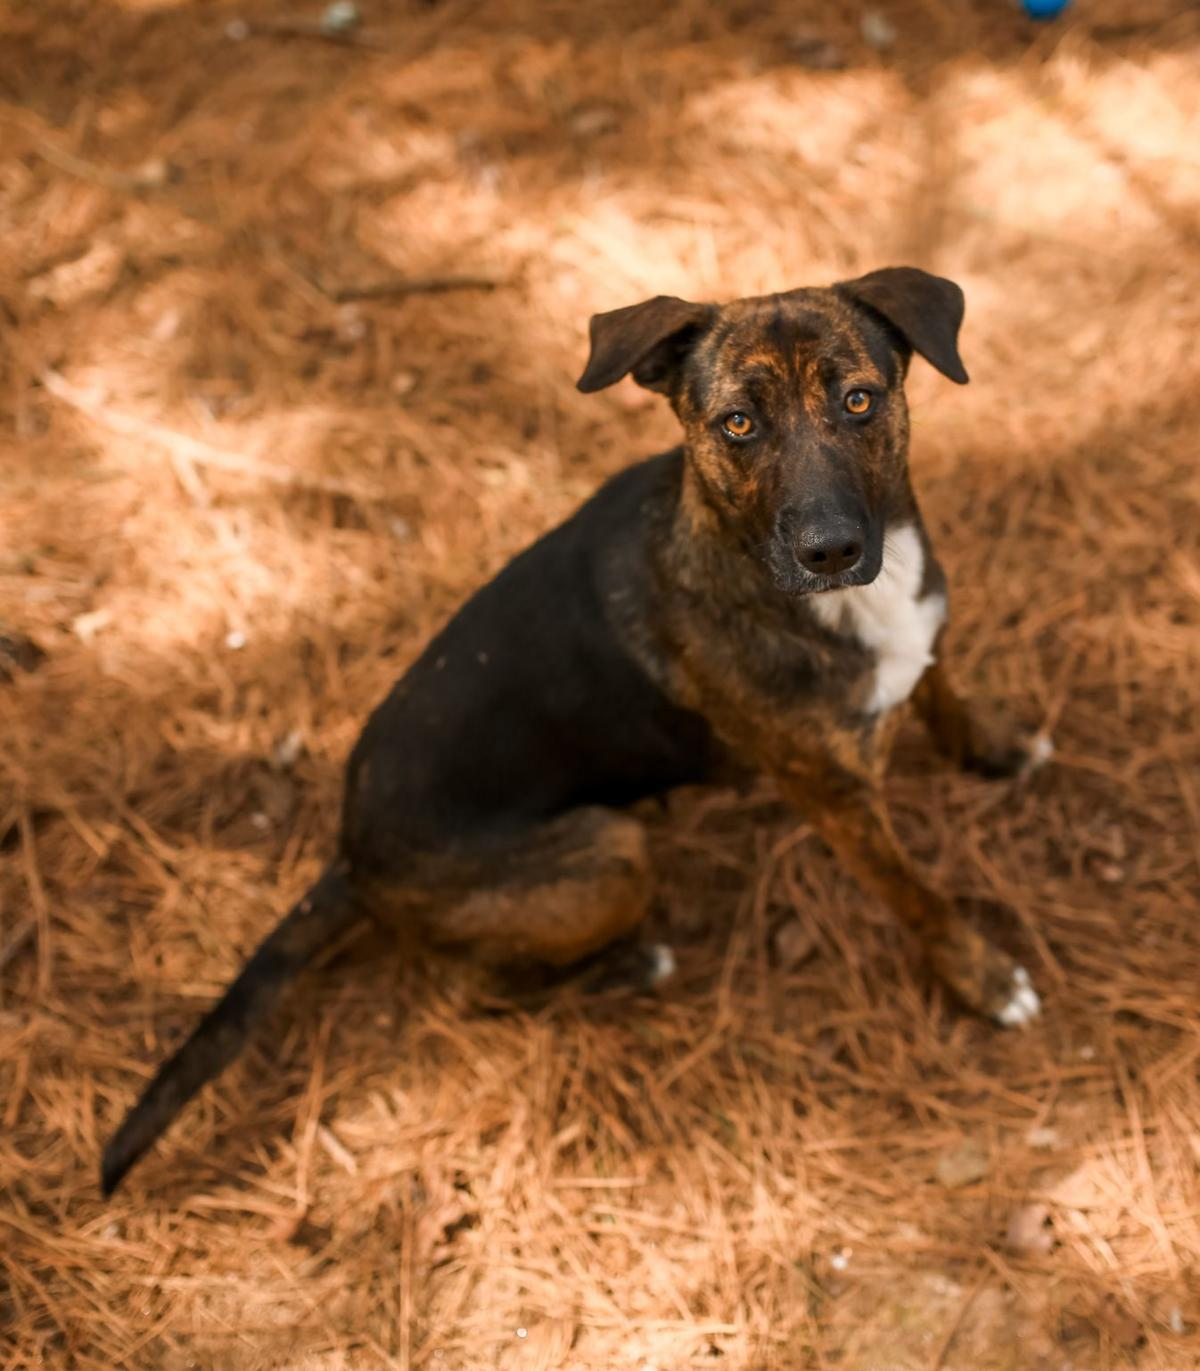 'Samantha' is shelter's Dog of the Week